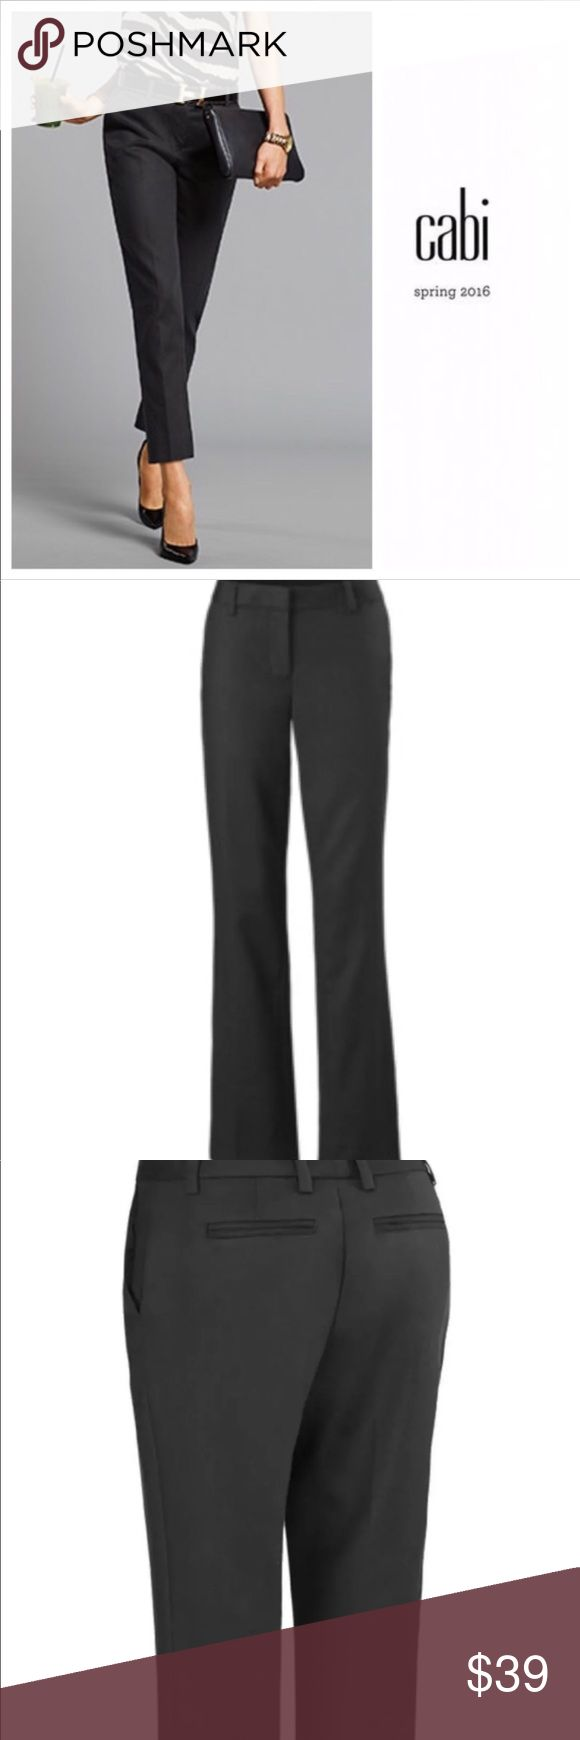 "Cabi go to trousers black Sz 2 5078 ankle pants CAbi Style #5078 Black Go-To Trouser Ankle Pant.  Retail price $119 Size 2; Inseam 27"", Rise 8"", Waist 30""  Pre-owned very good/excellent condition.  I see no flaws.    A new super chic silhouette for us, these Céline-inspired pants have a more relaxed hip and a straighter, ankle-skimming length. In the same substantial cotton, modal, and spandex blend as the Mariner Trouser, this black trouser is the basic that's anything but! CAbi Pants…"